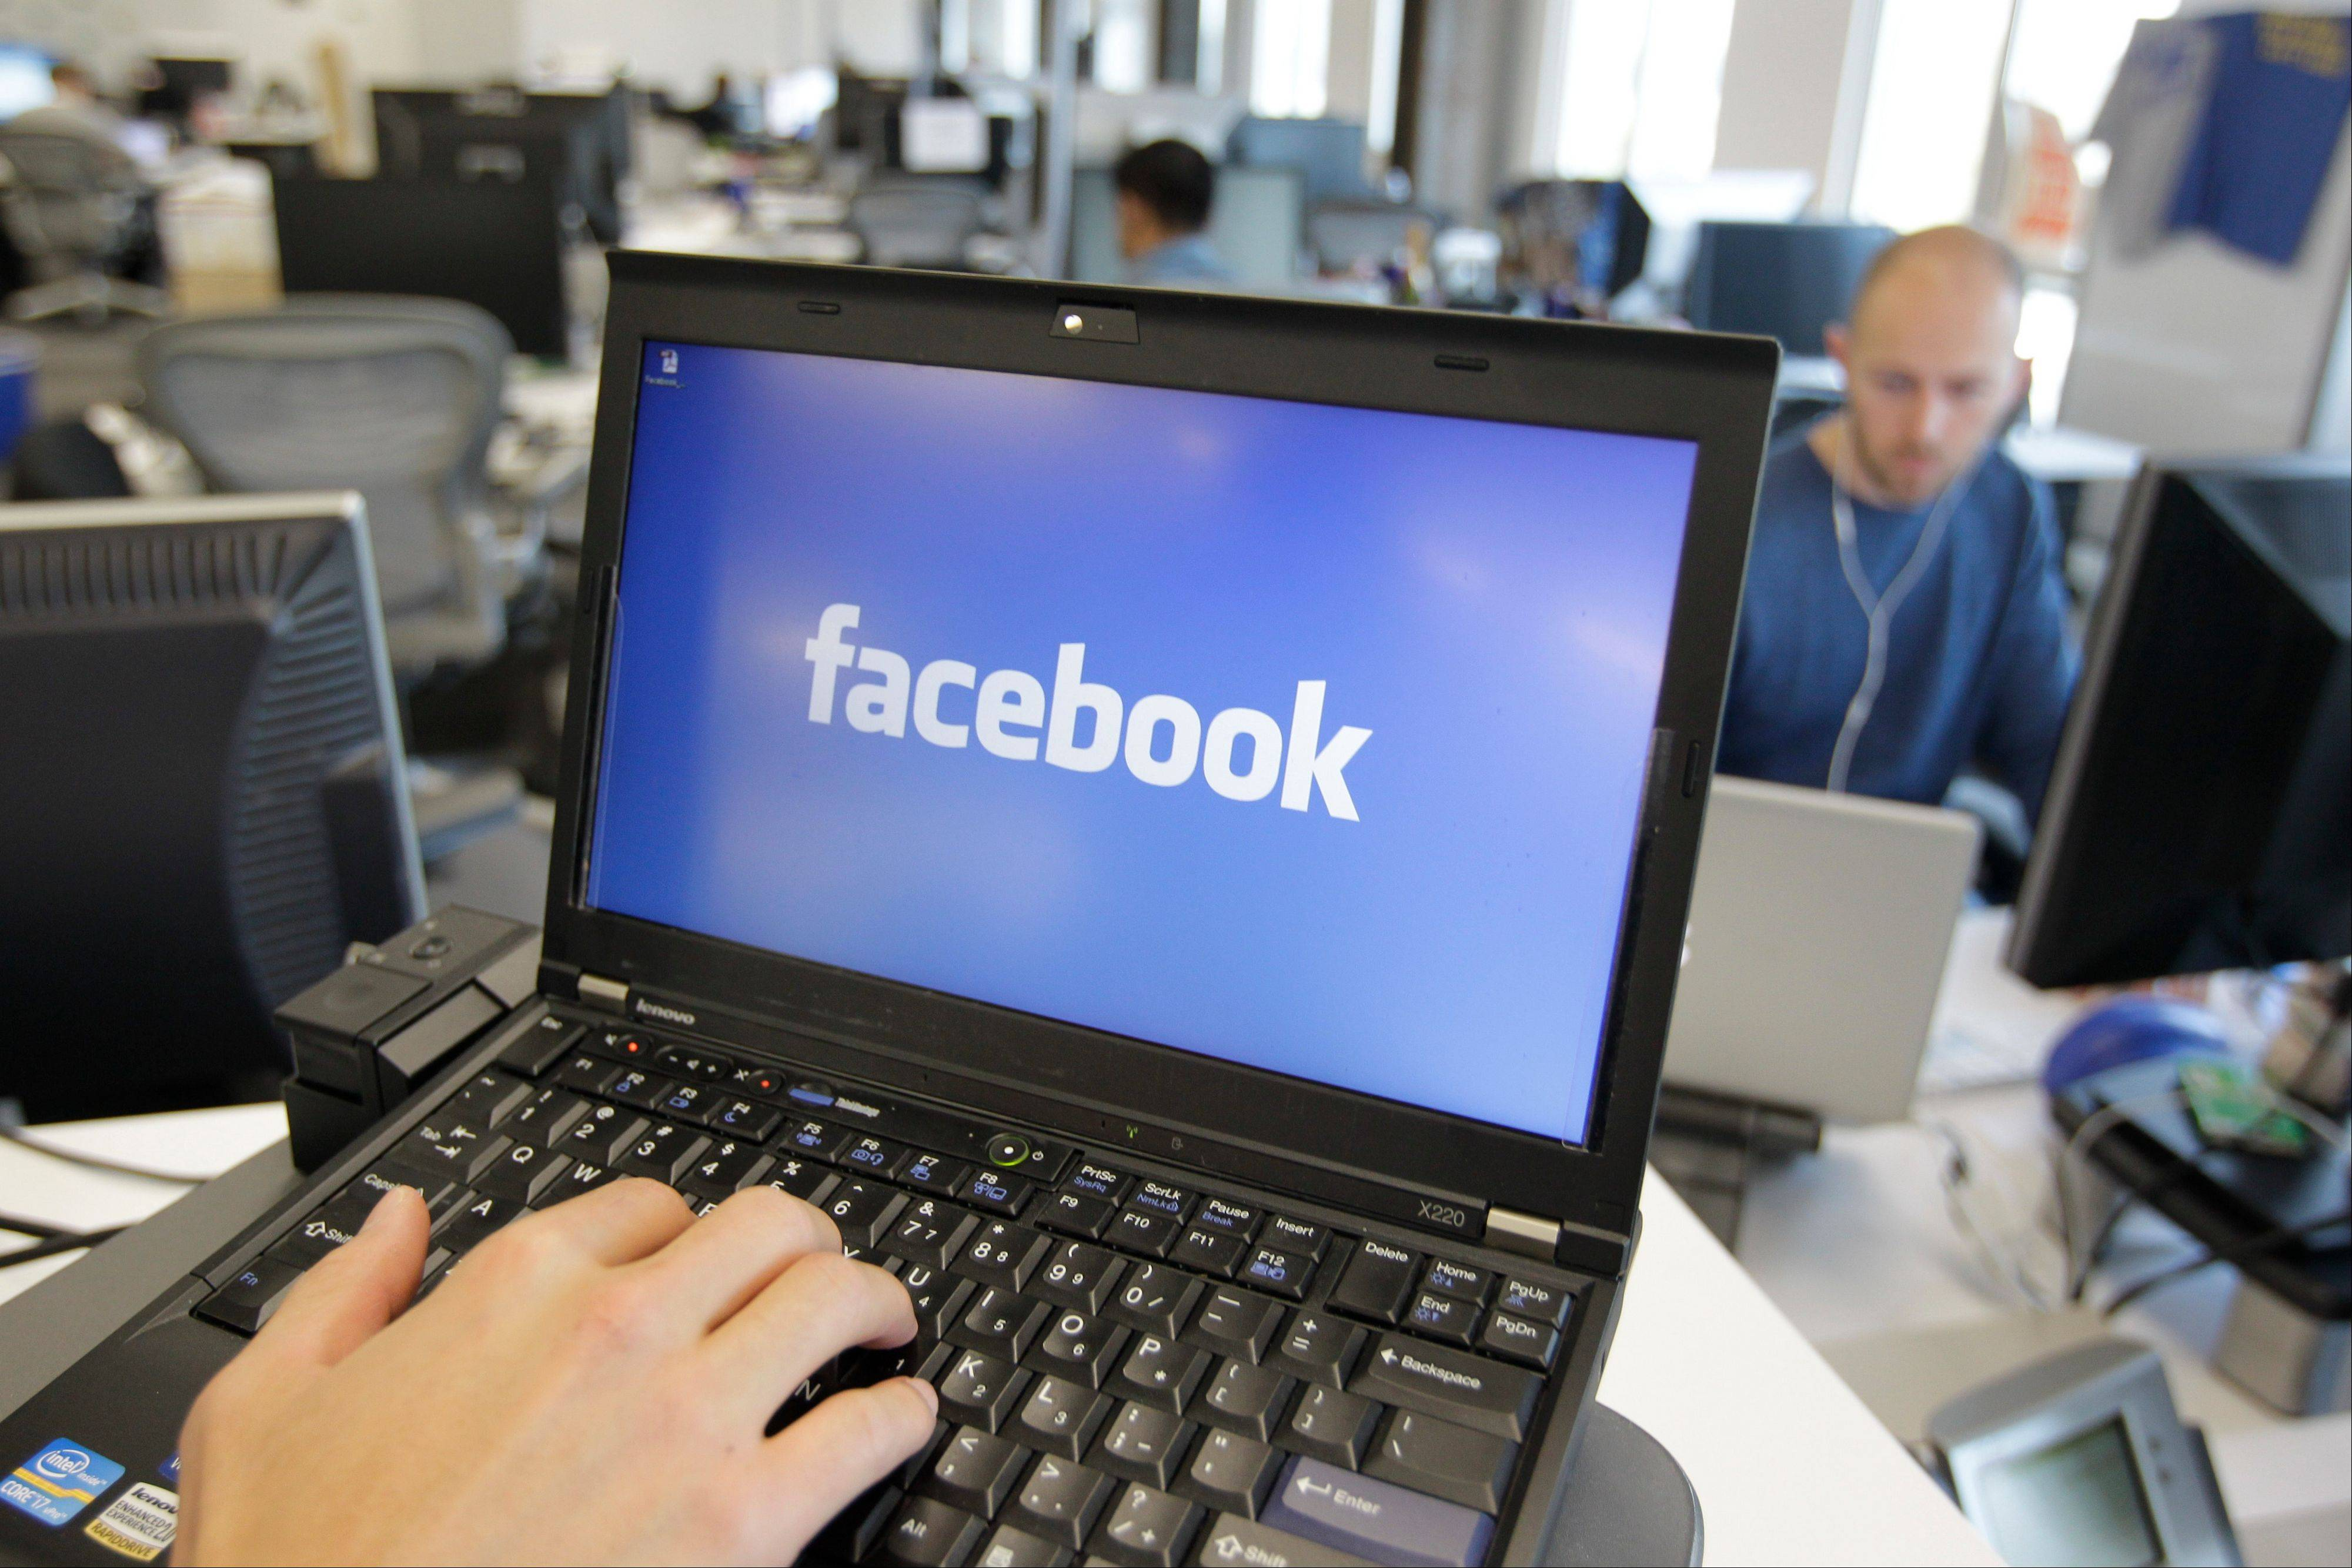 Facebook announced Tuesday it was working on new ways to keep users from stumbling across gruesome content on its website following an outcry over the discovery of beheading videos there.